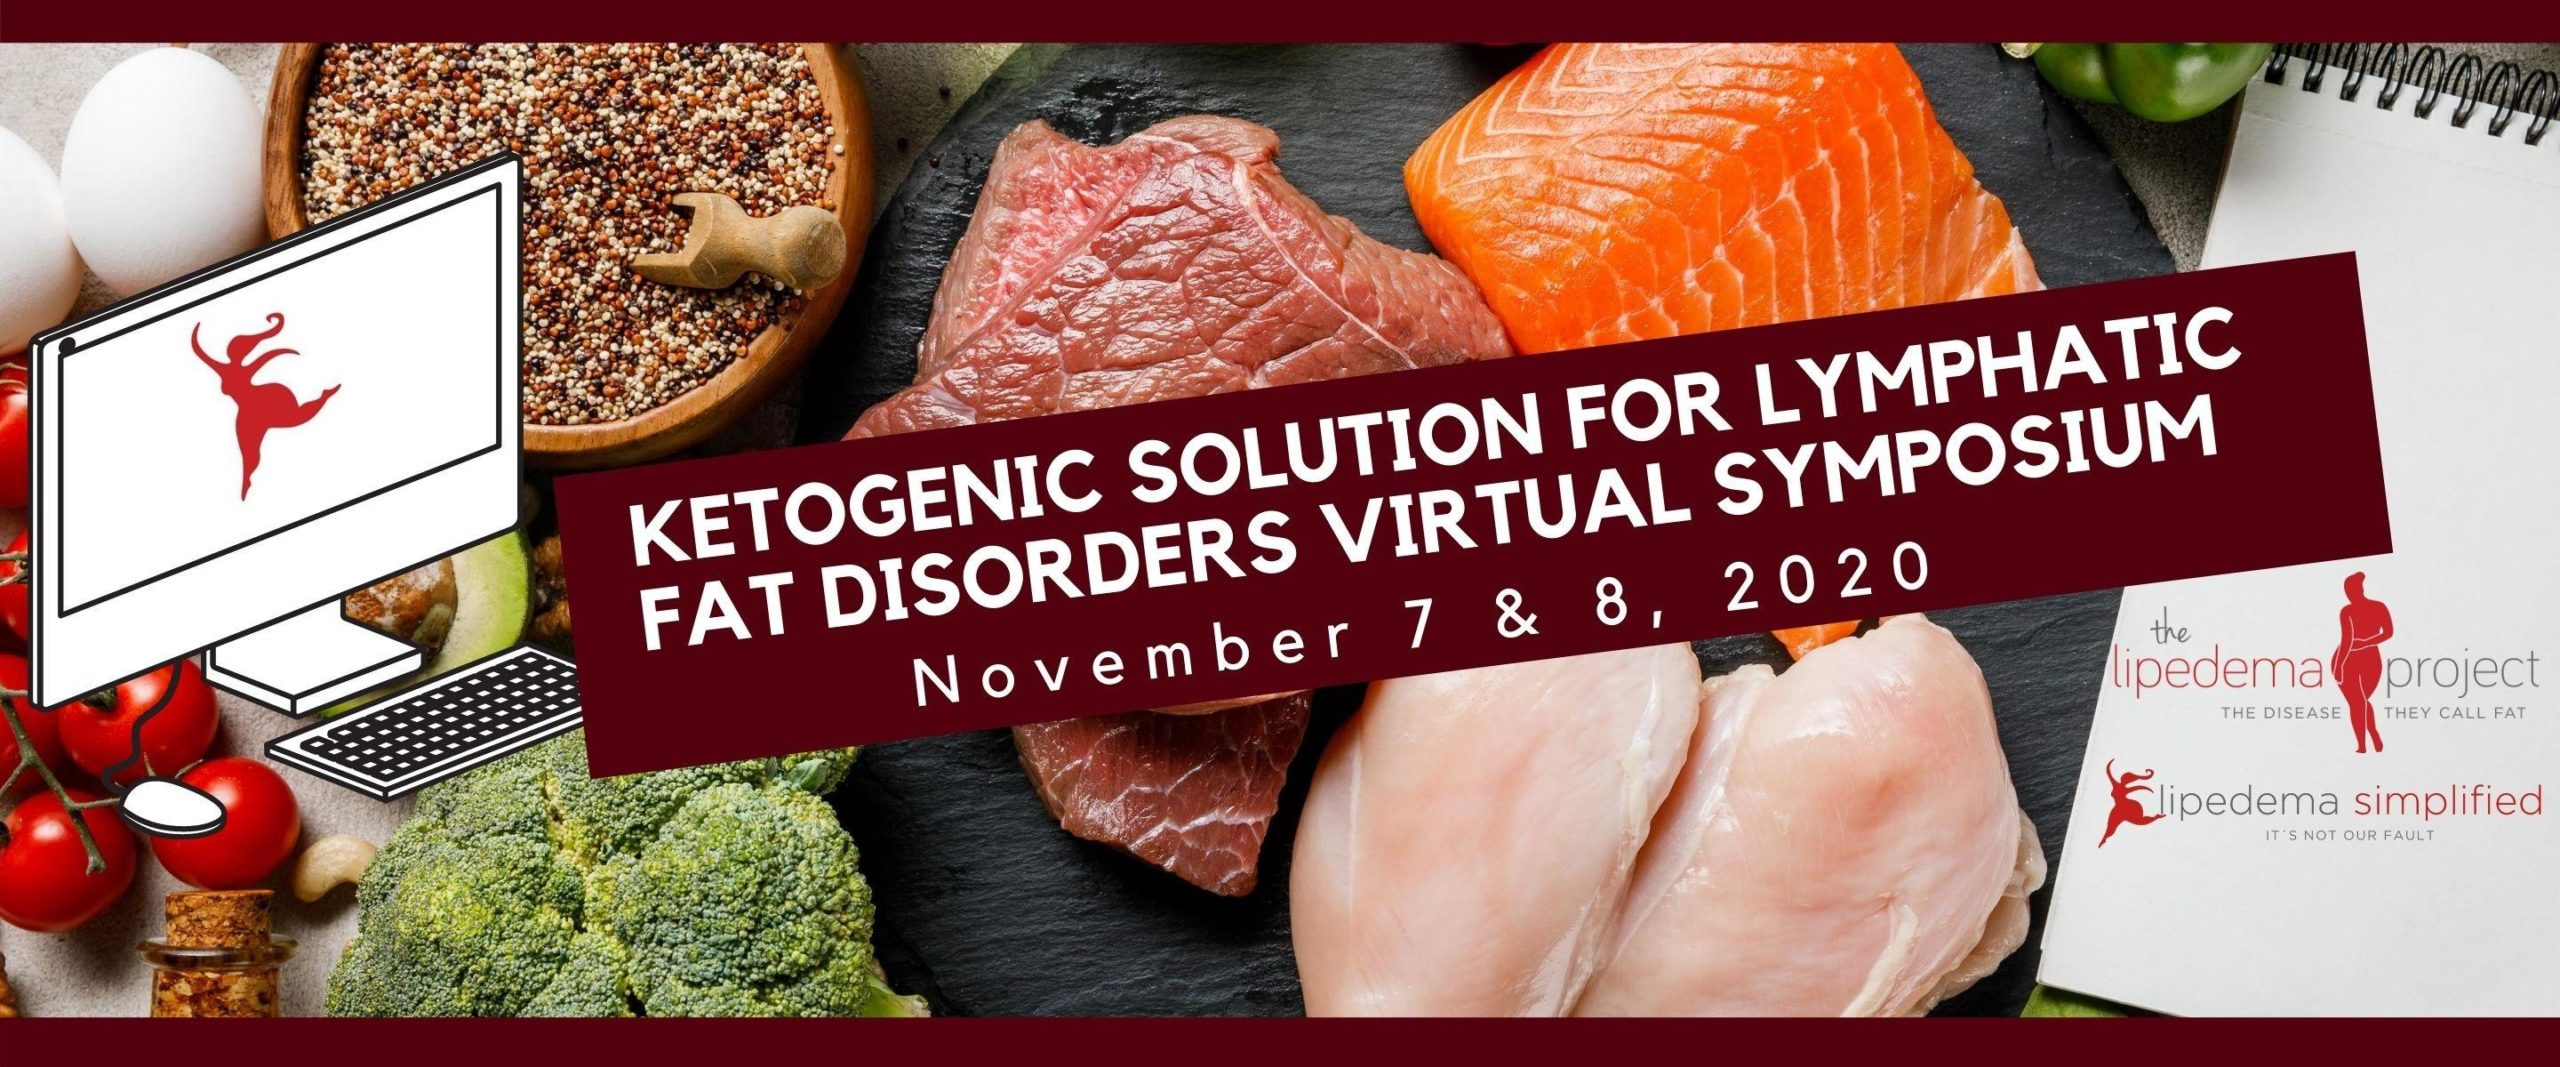 Ketogenic Solution for Lymphatic/Fat Disorders Virtual Symposium 2020